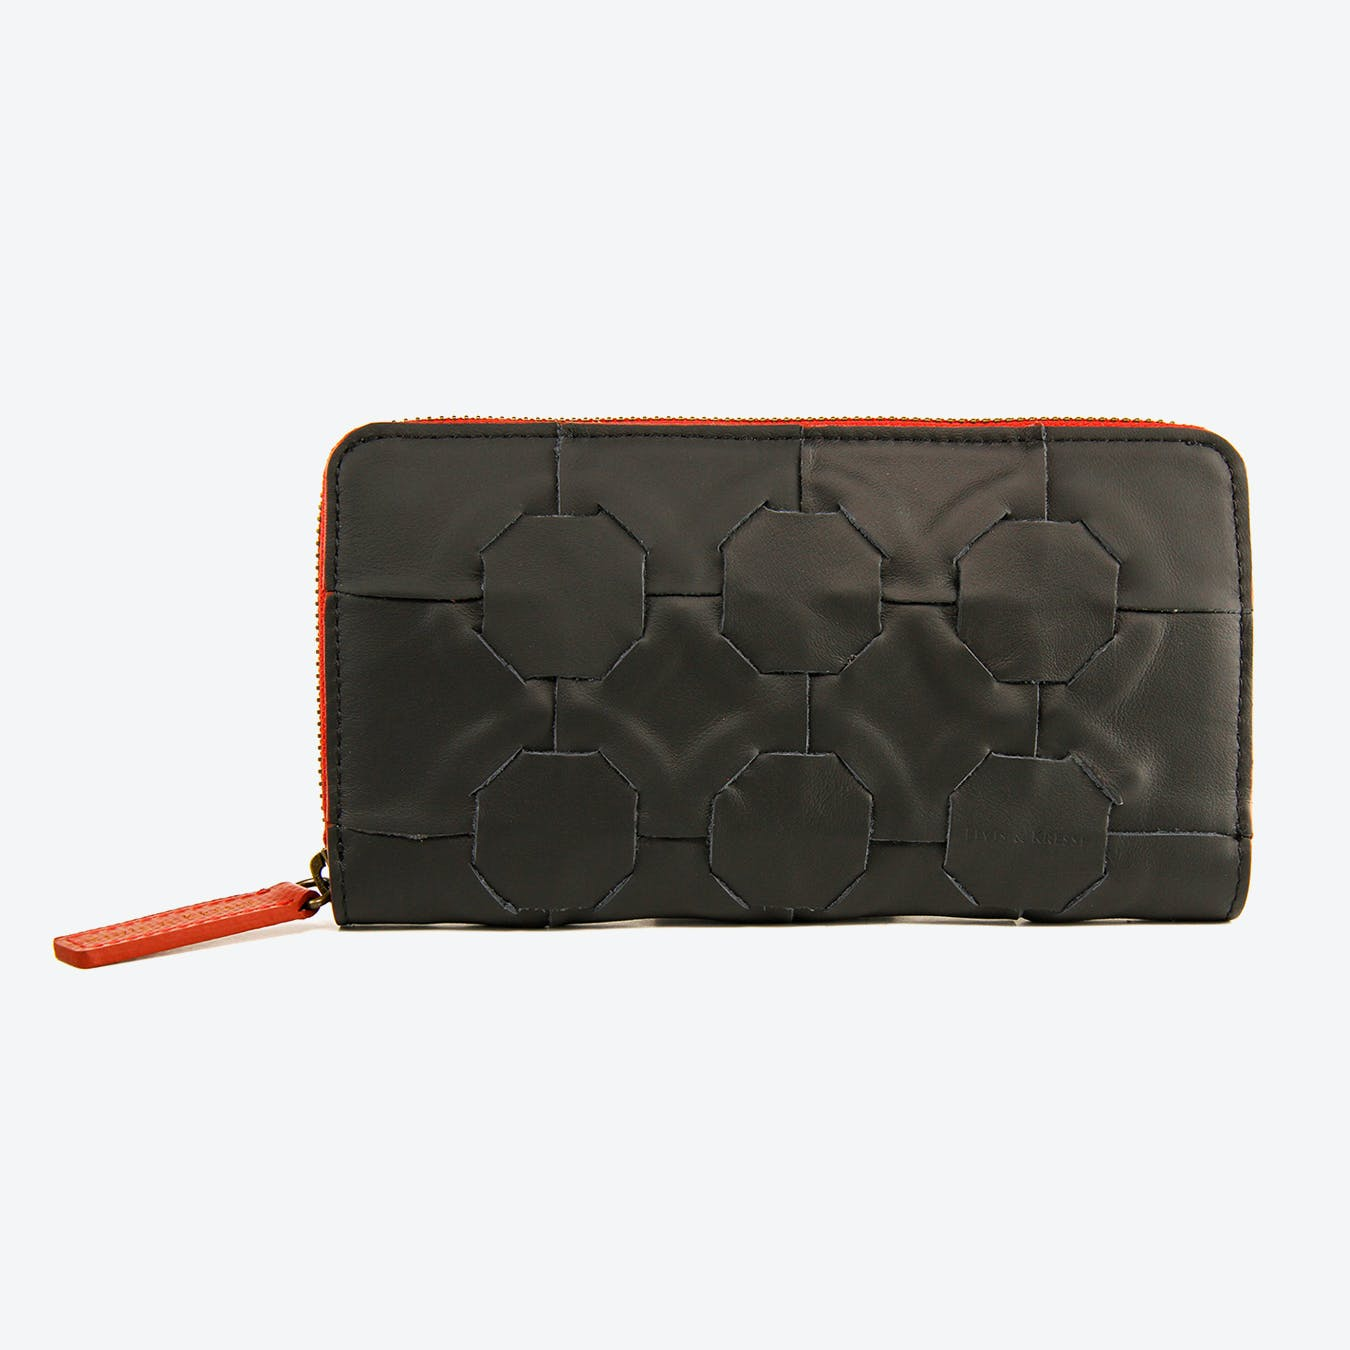 Fire & Hide Purse in Black Burberry Leather